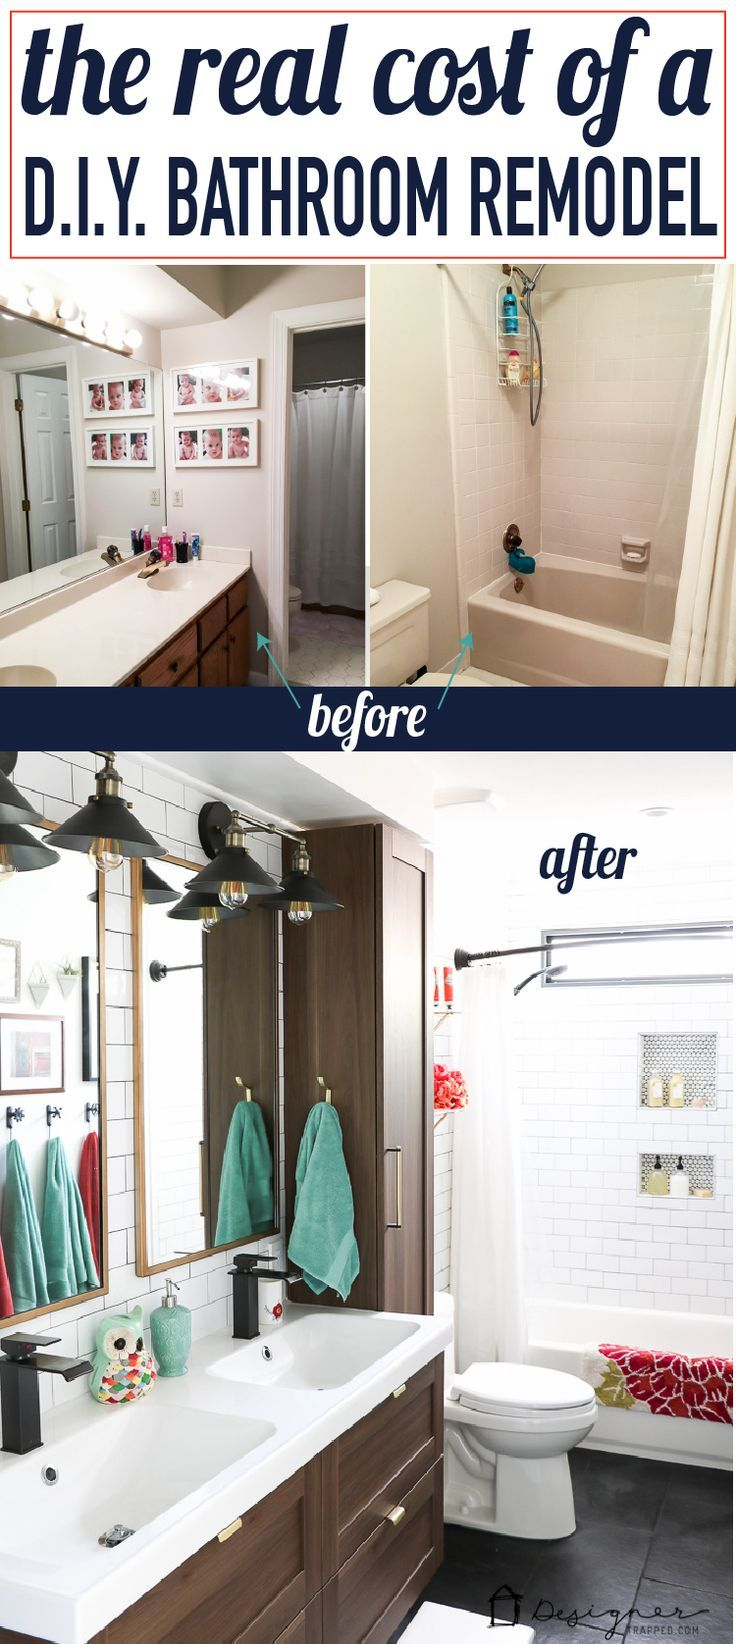 Iu0027ve Always Wondered How Much A Real DIY Bathroom Renovation Costs. This Is  The First Post I Have Seen That Gives Actual, Hard Numbers. And WOW, WOW,  WOW!